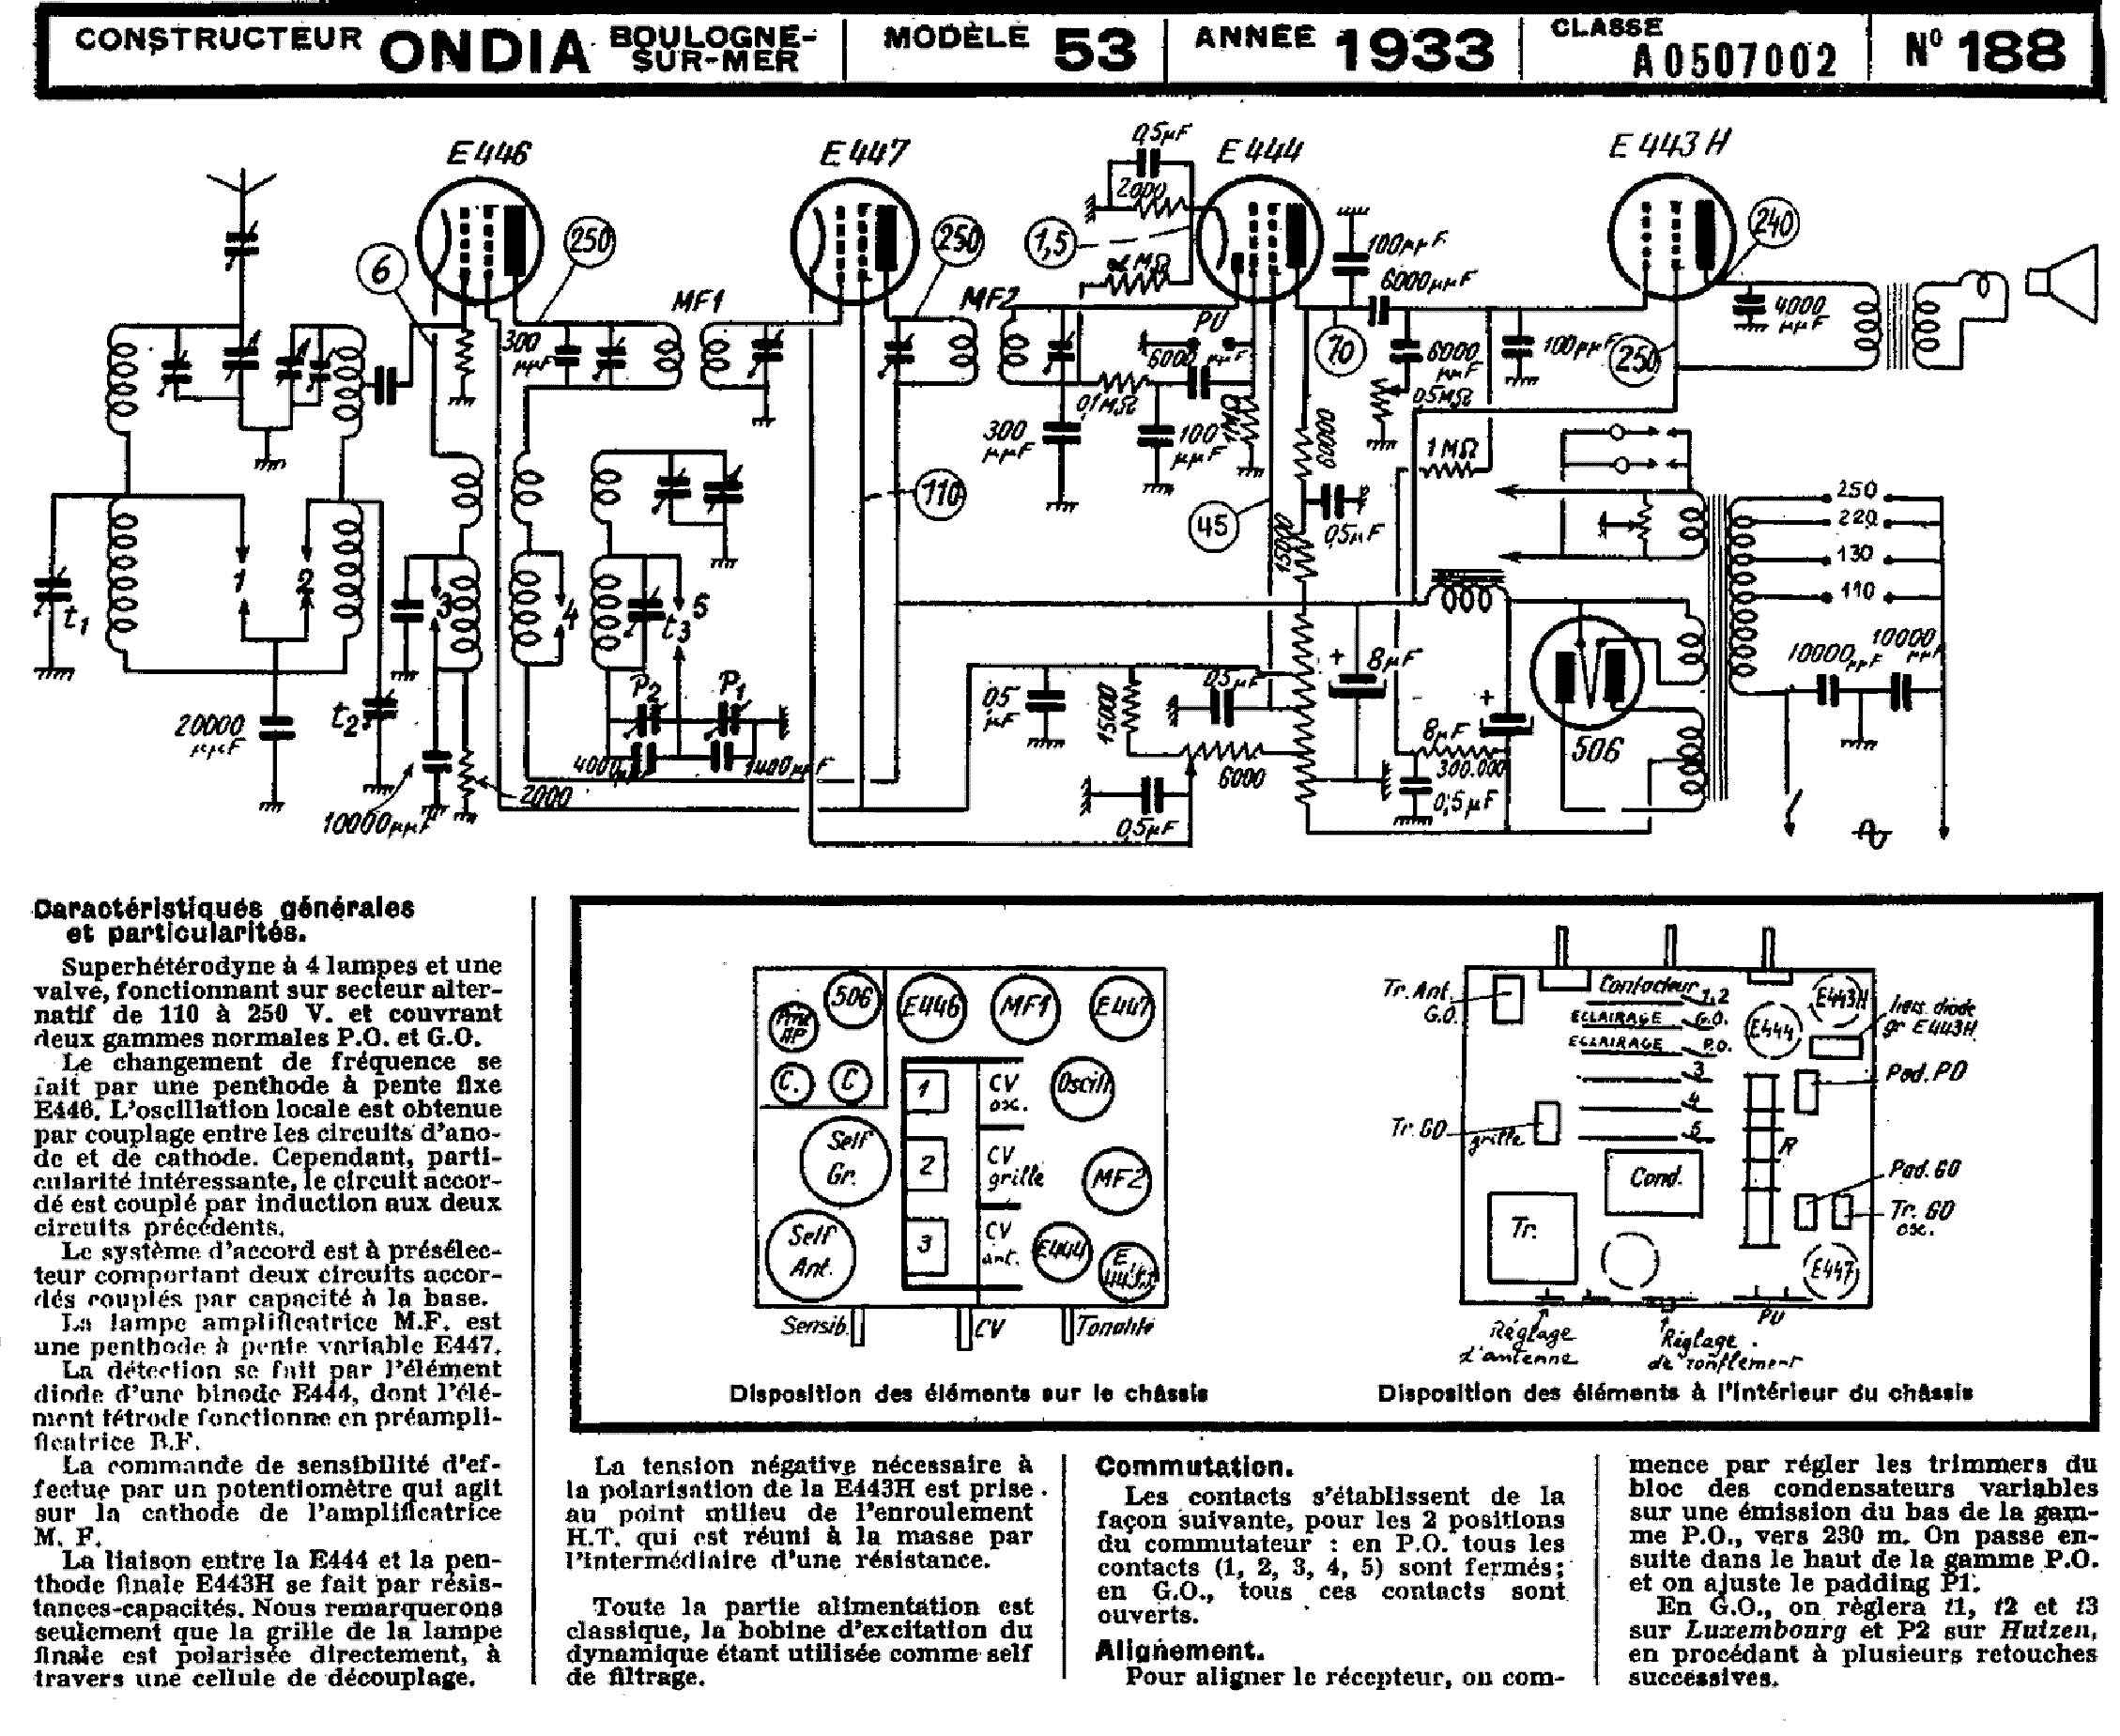 ONDIA 201 RADIO 1938 SCH Service Manual free download